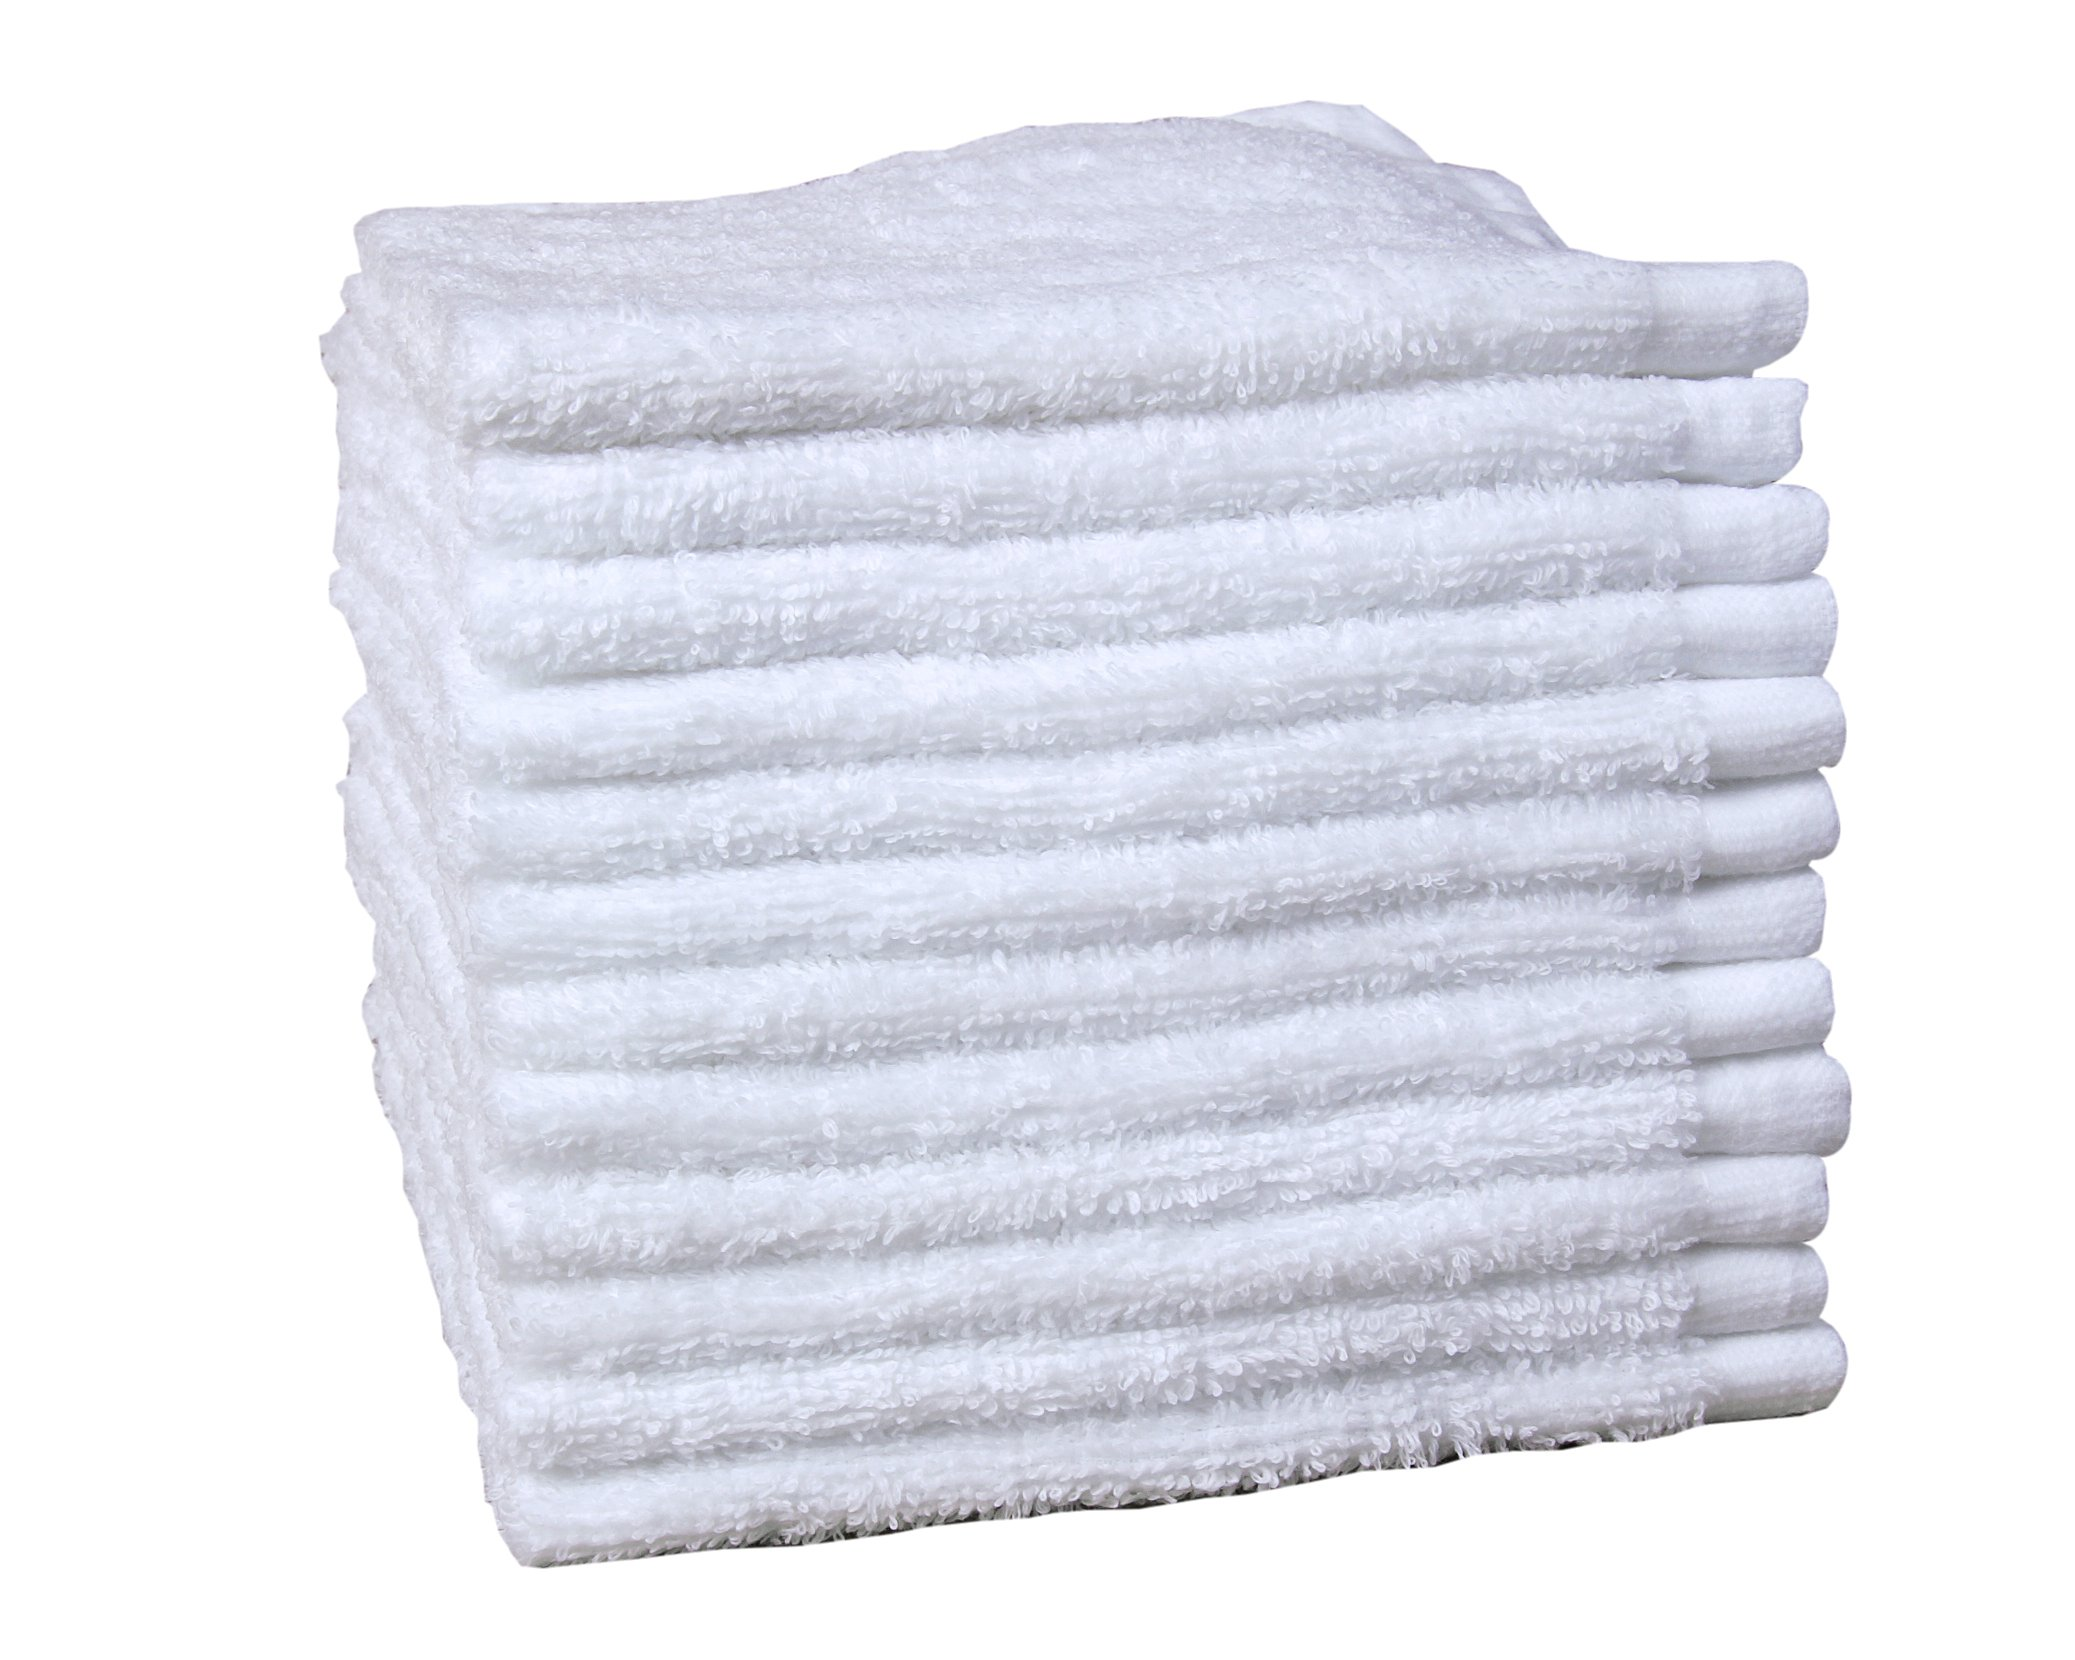 Jonny&Lora 12-Pack White 100% Cotton Compressed Washcloths 12''x12'', Carry-on,Durable, Lightweight, Commercial Grade and Ultra Absorbent